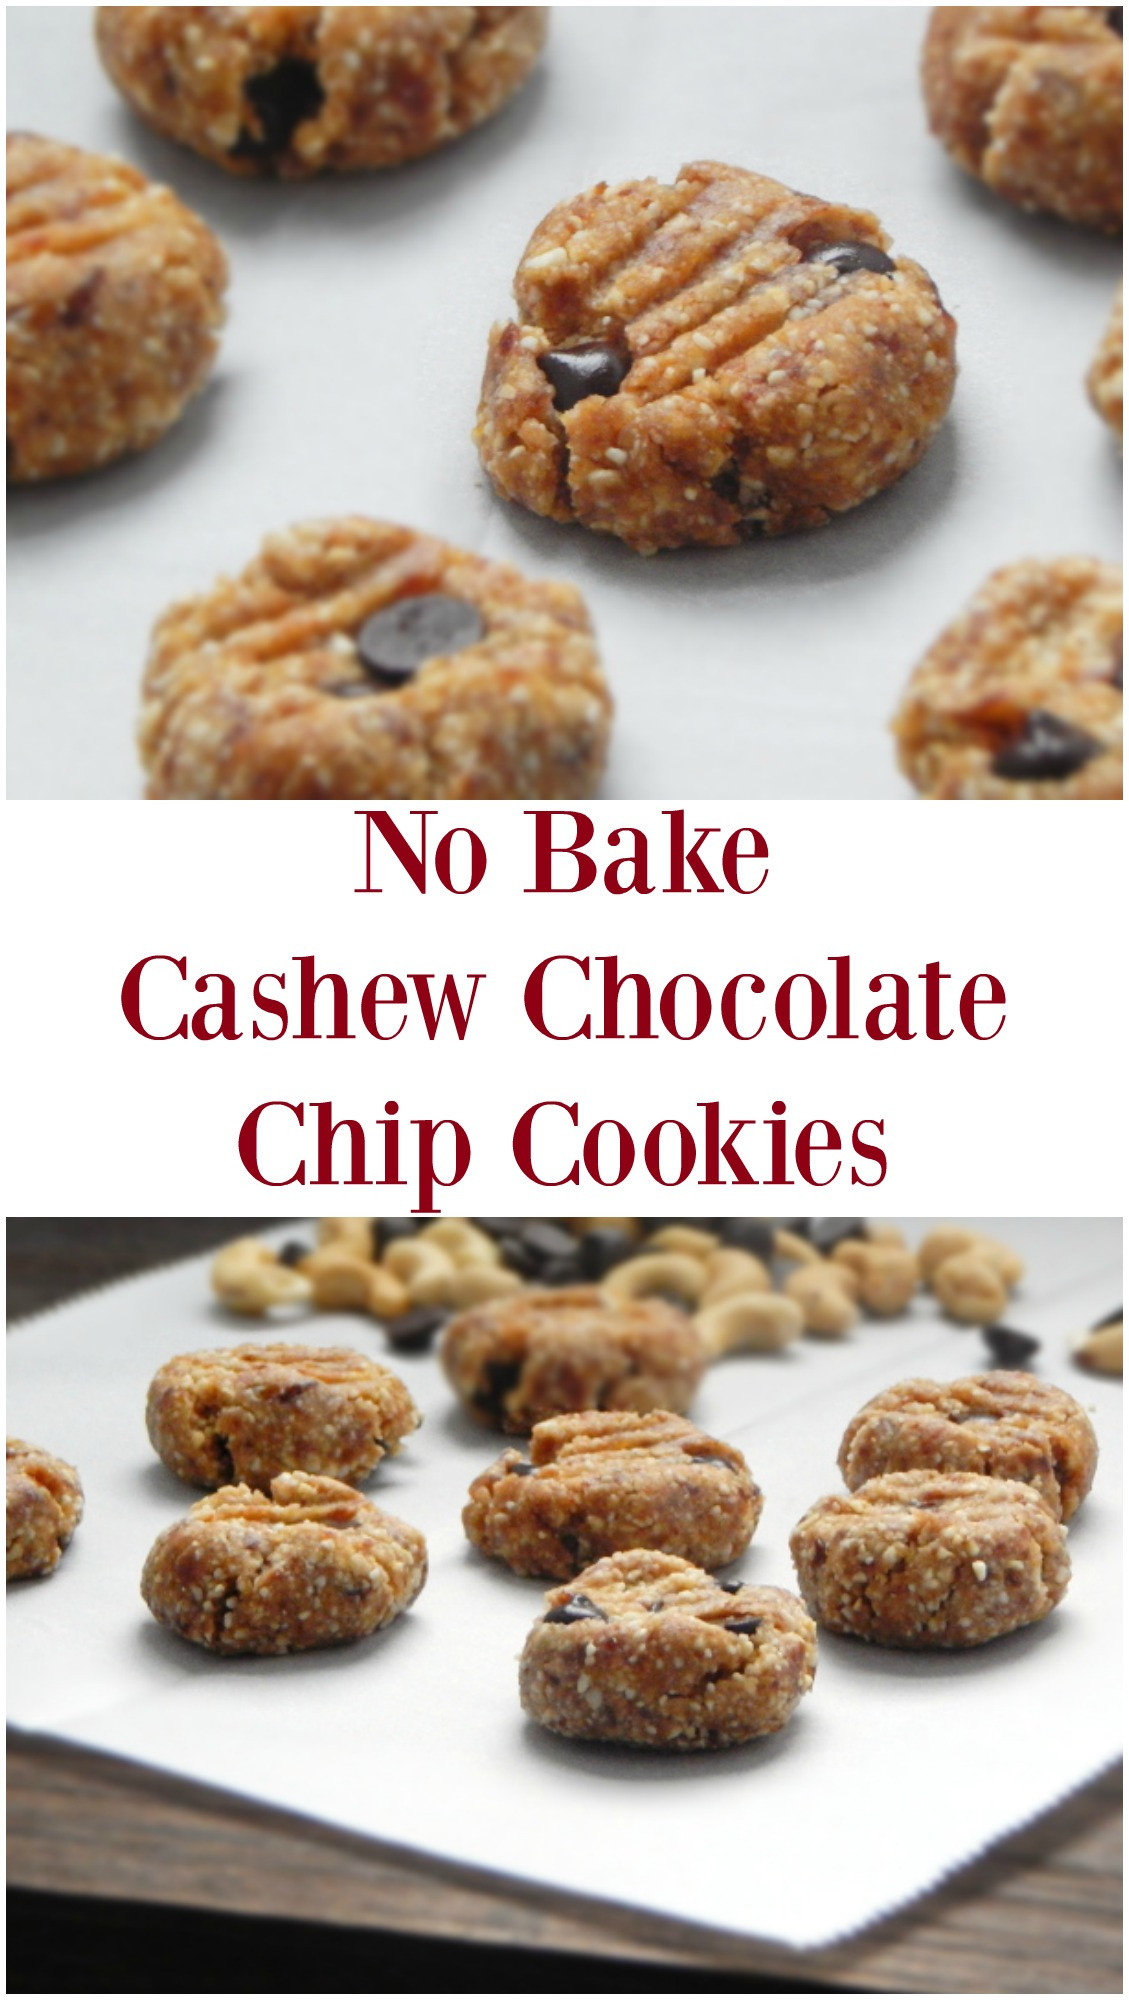 No Bake Chocolate Chip Cookies  November Before December this Year Recipe No Bake Cashew